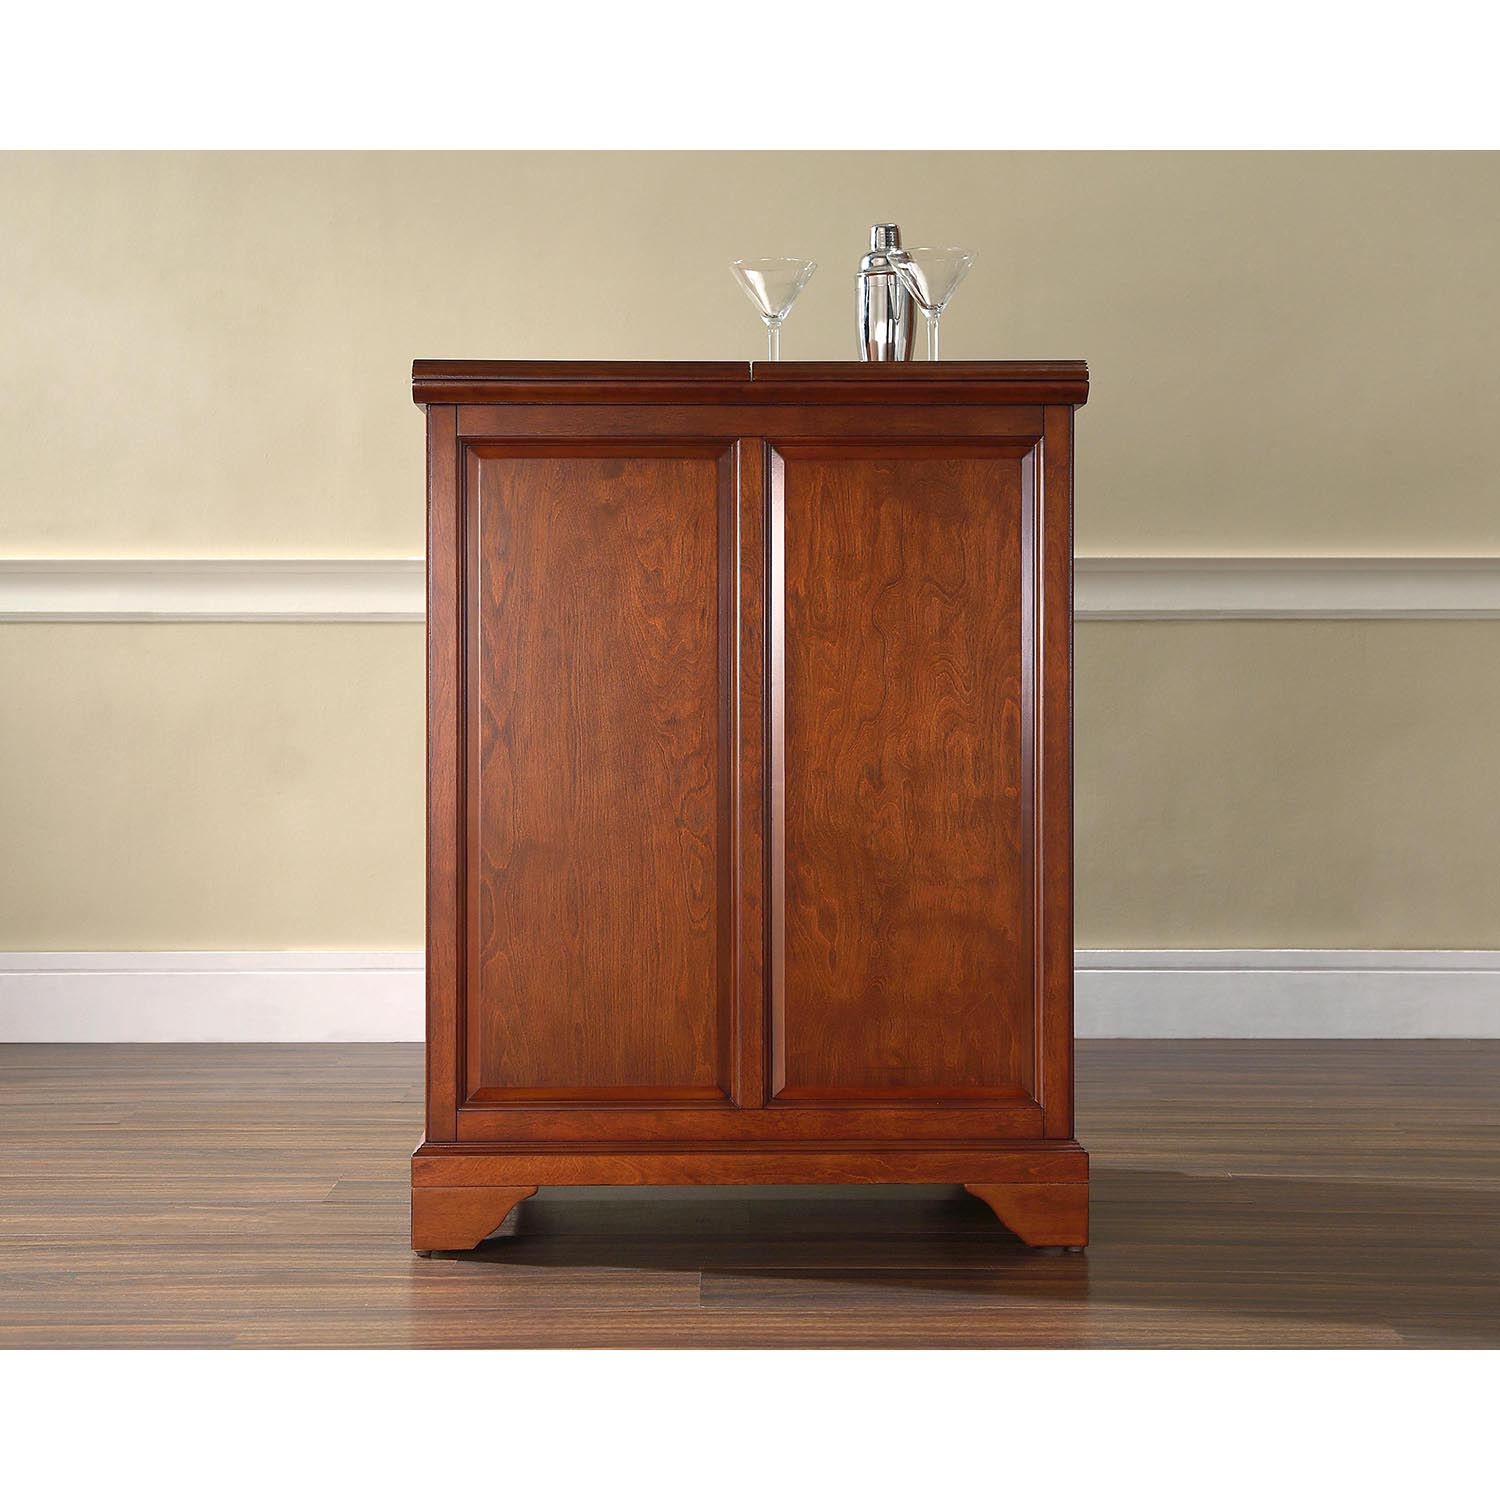 LaFayette Expandable Bar Cabinet - Classic Cherry - CROS-KF40001BCH